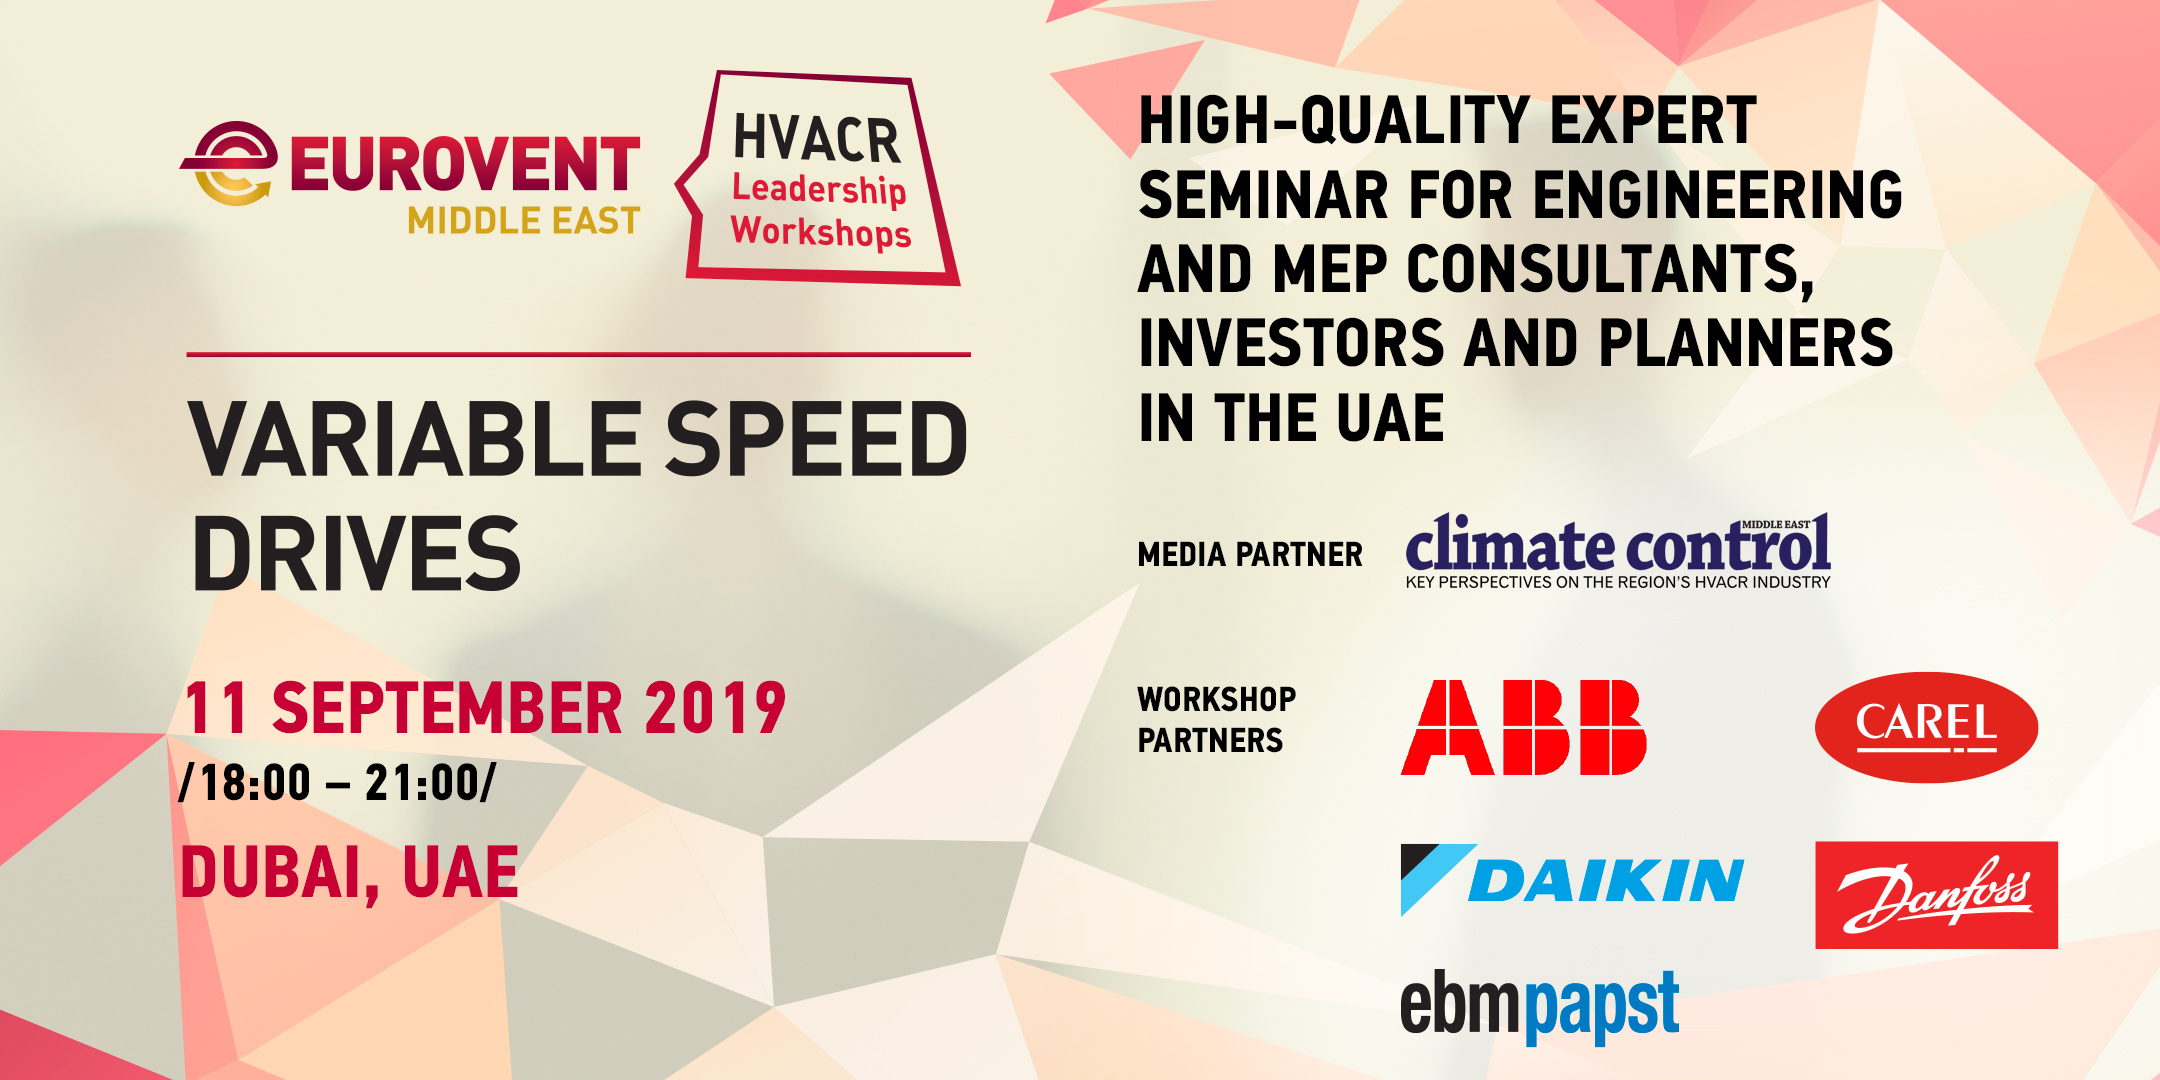 2019 - 'HVACR Leadership Workshops' by Eurovent Middle East - Variable Speed Drives: How to create sustainable building specifications